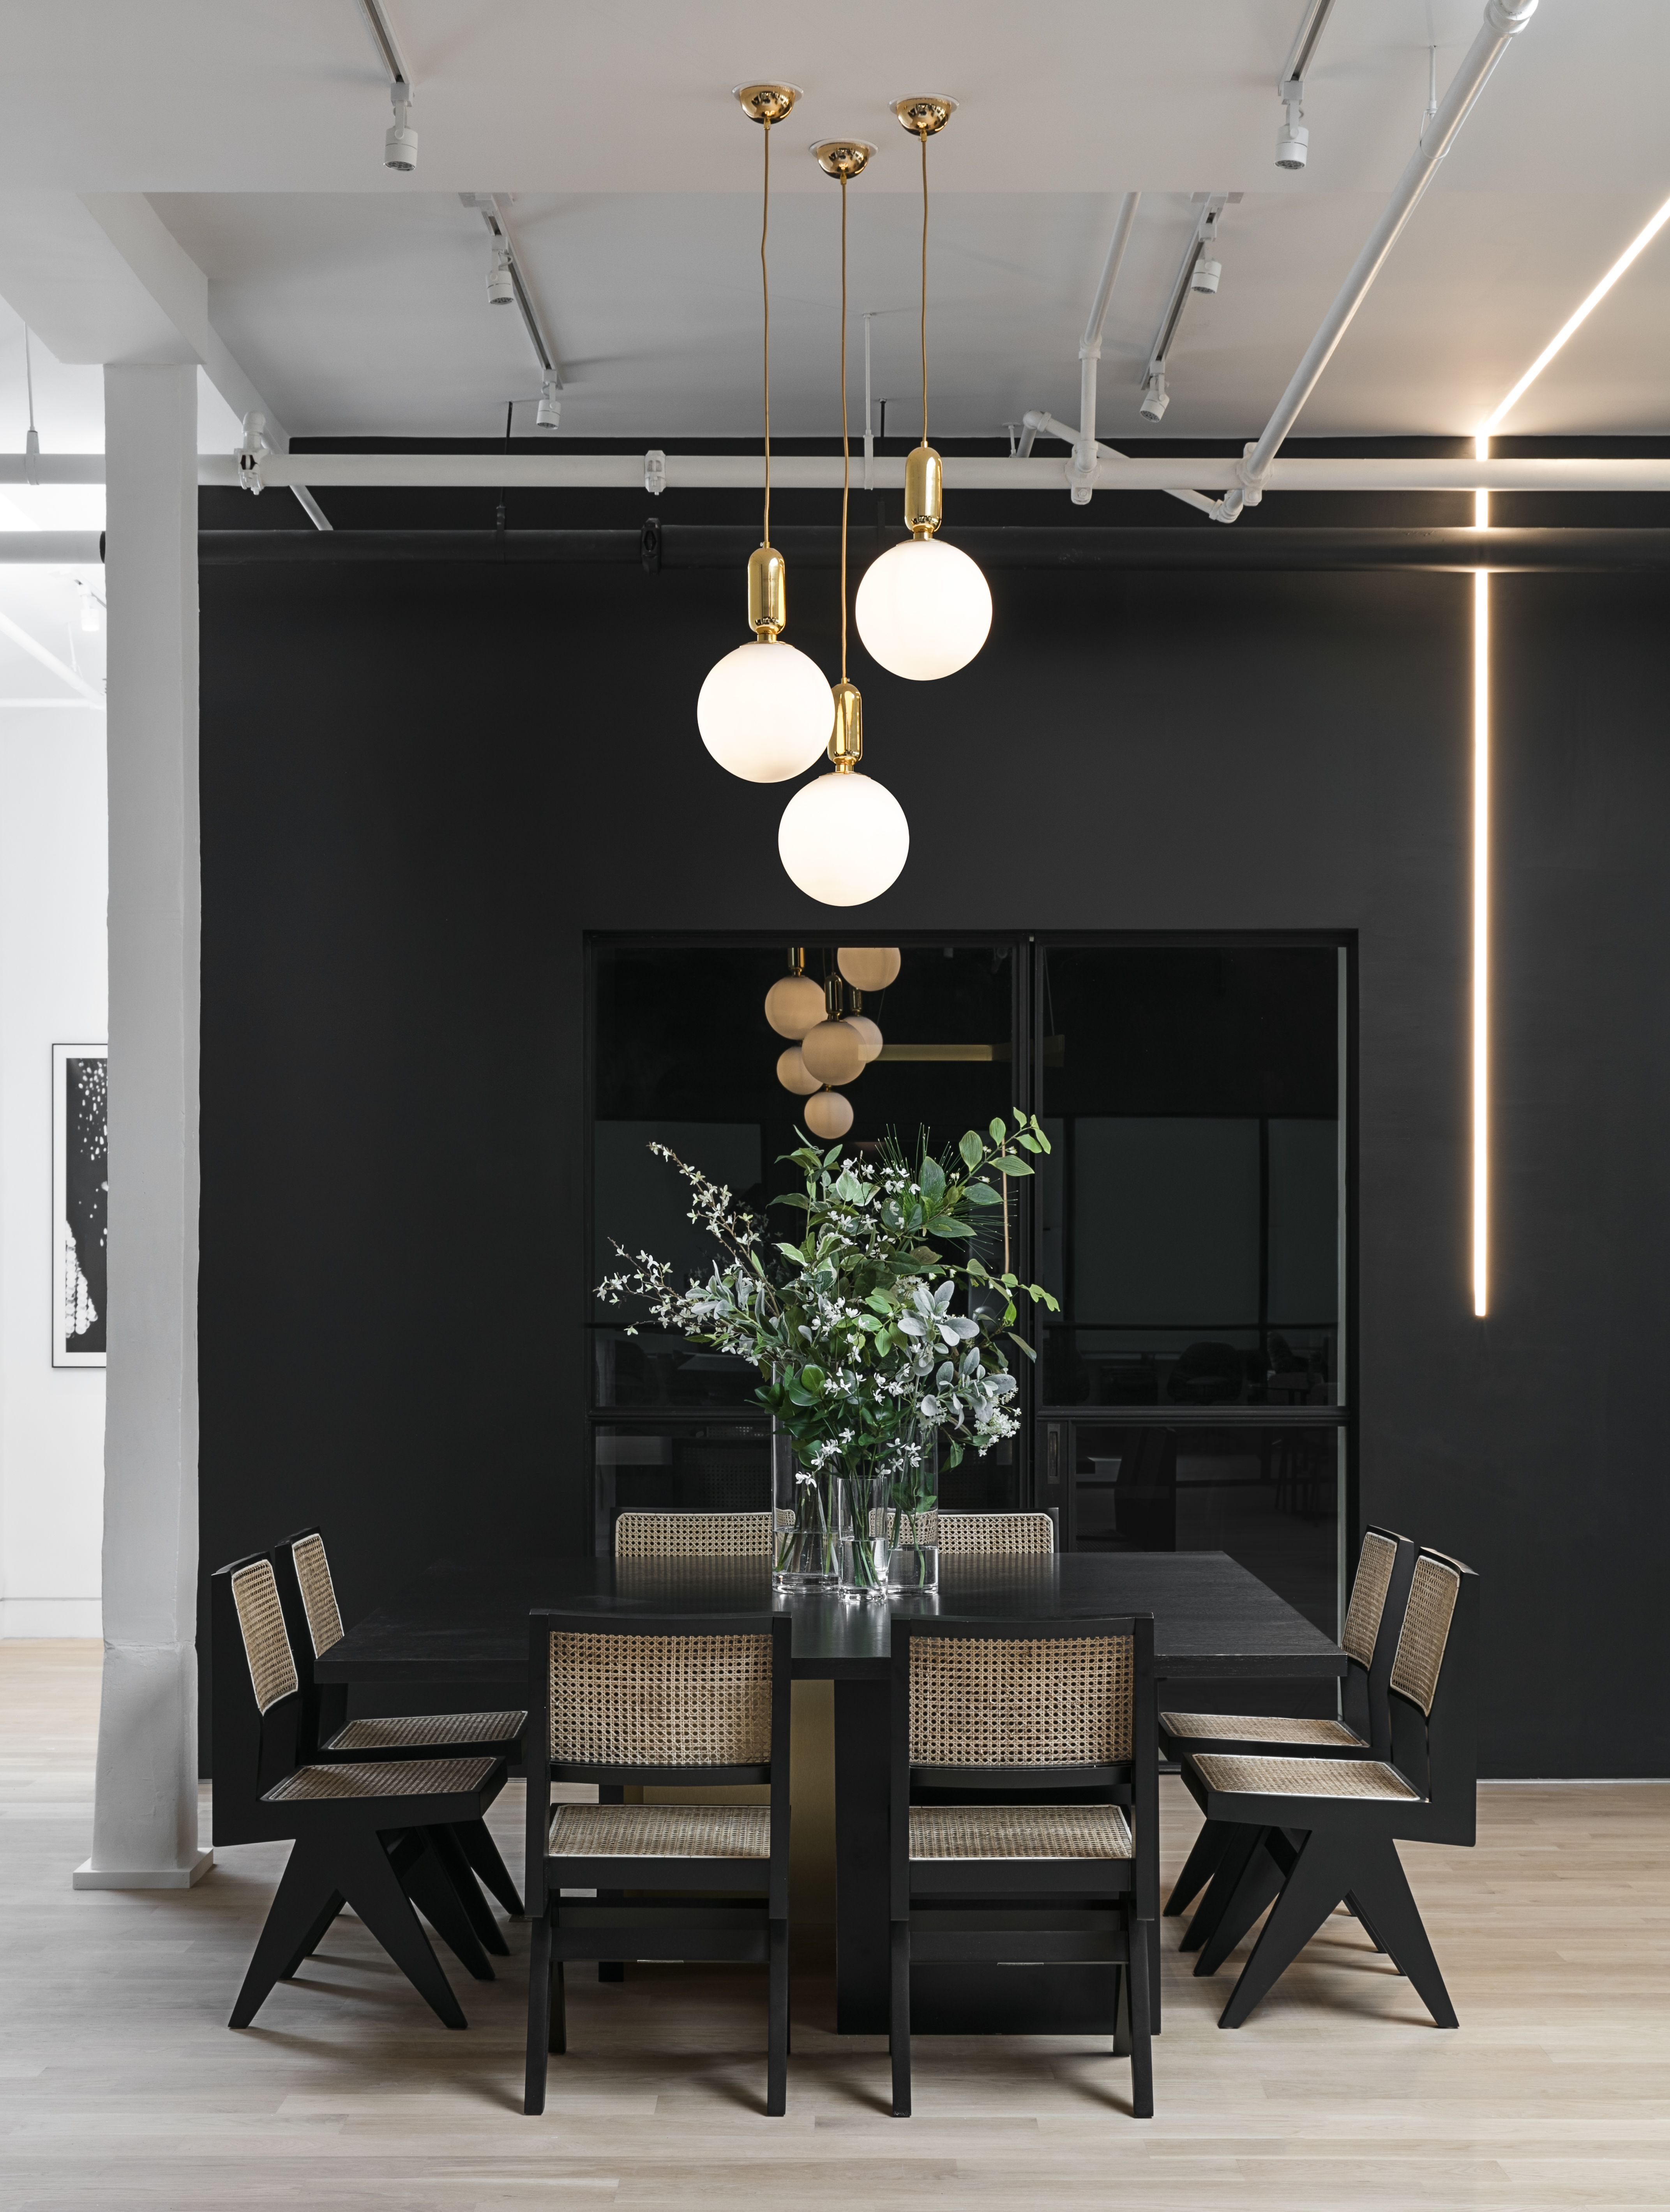 A Peek Inside New Beautiful Co Working Space For Creatives In Brooklyn